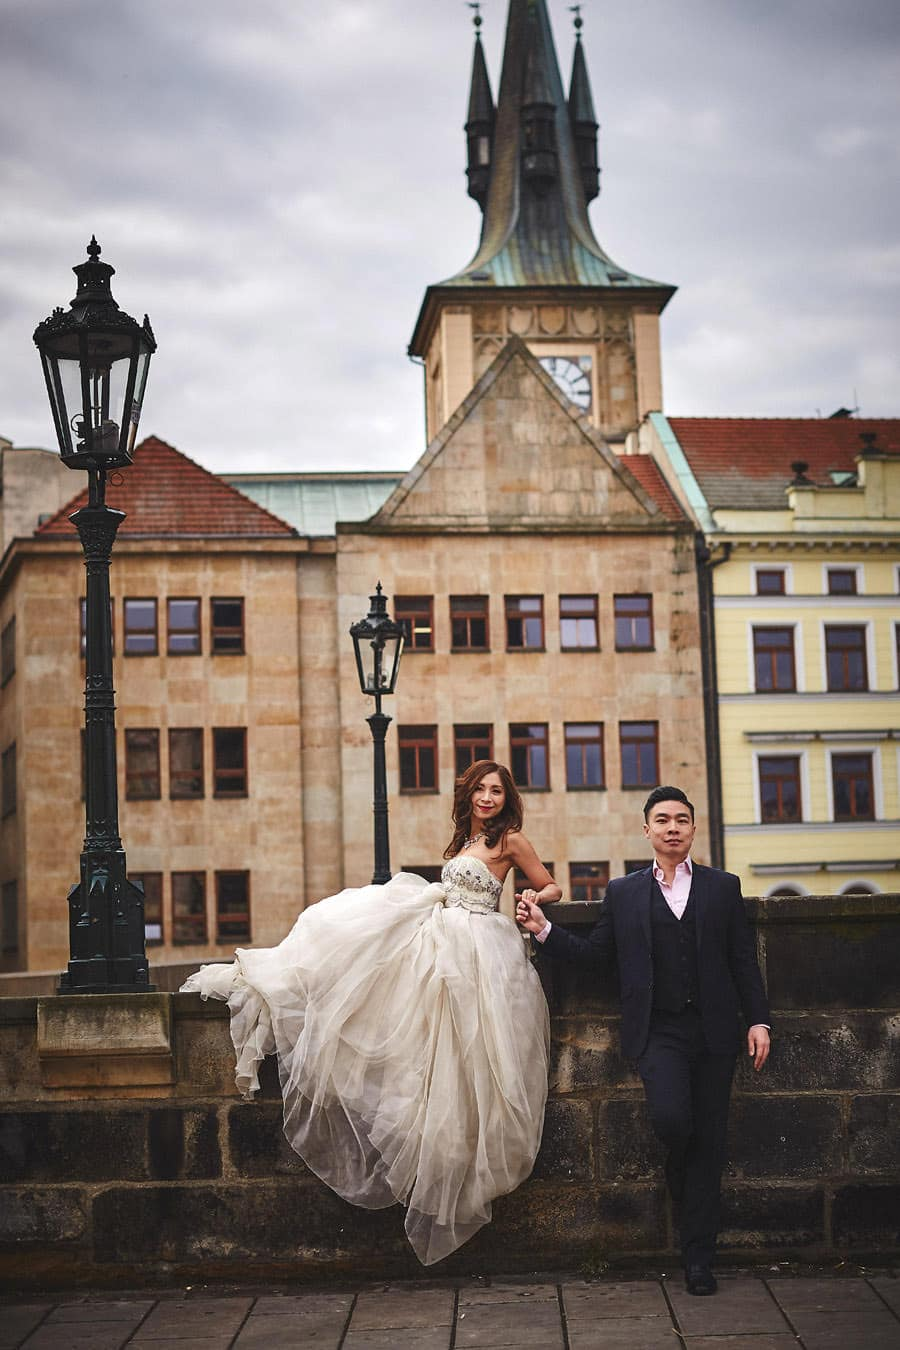 Our very cool and collected couple at the Charles Bridge in Prague - a Love Story Engagement photo shoot with Tina & Mike